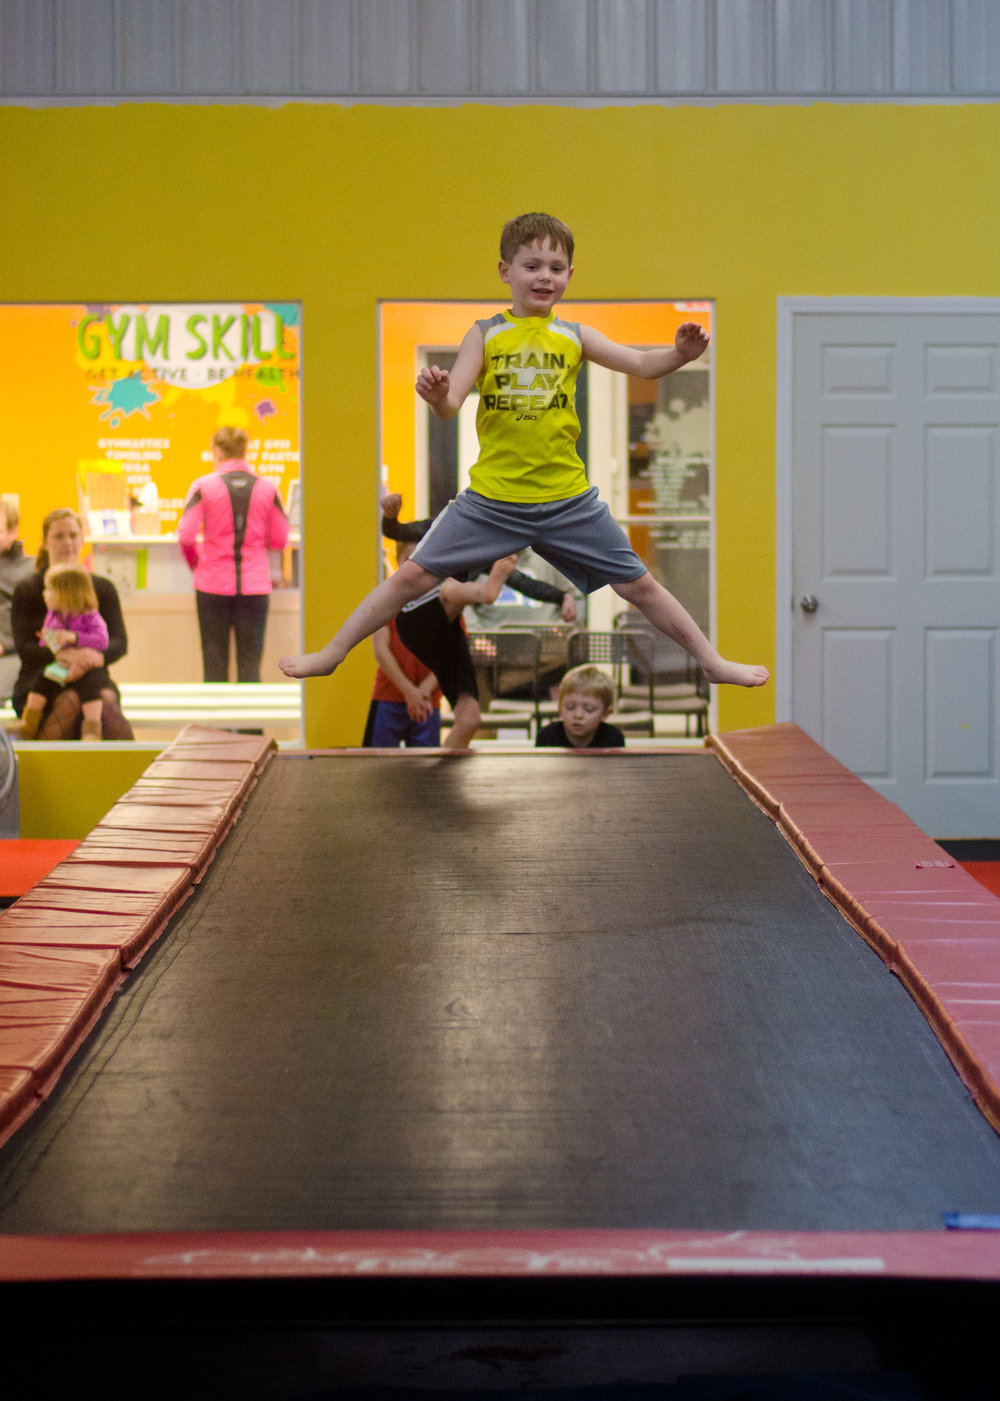 Bounce on our Tumble Trak!